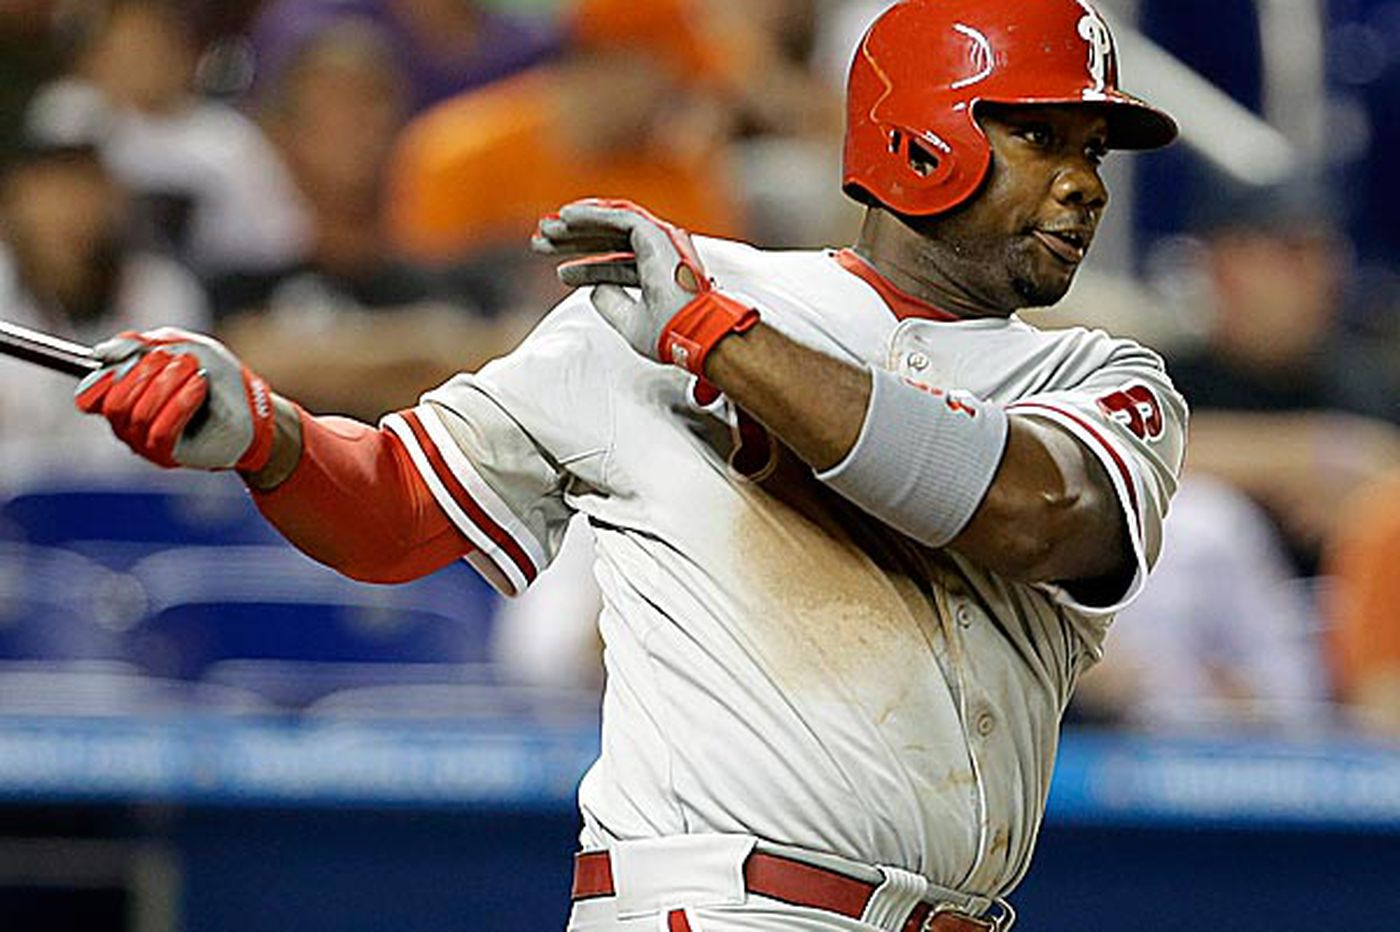 Feeling better after shot, Ryan Howard returns to lineup